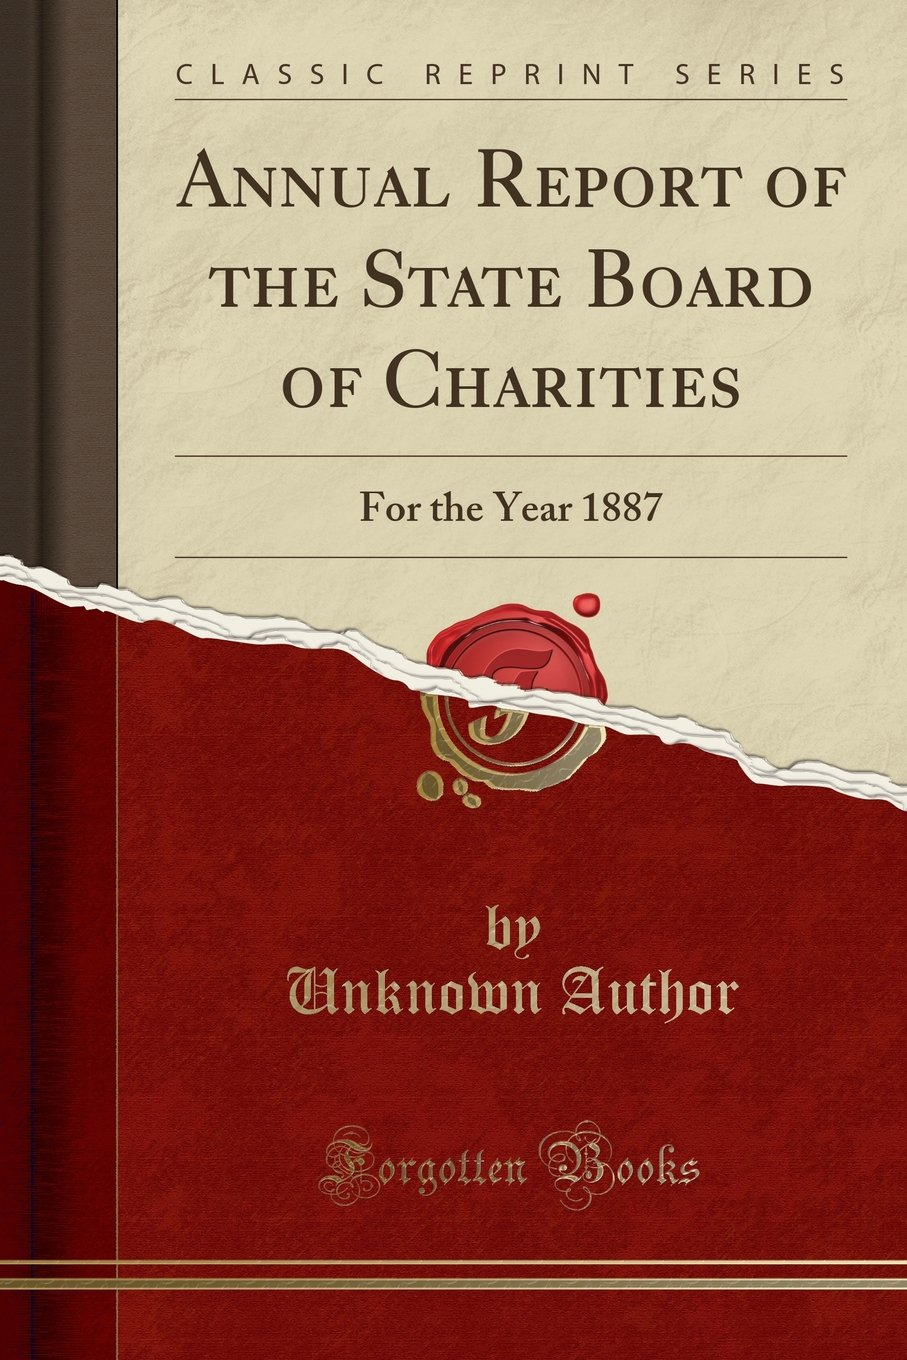 Annual Report of the State Board of Charities: For the Year 1887 (Classic Reprint) PDF